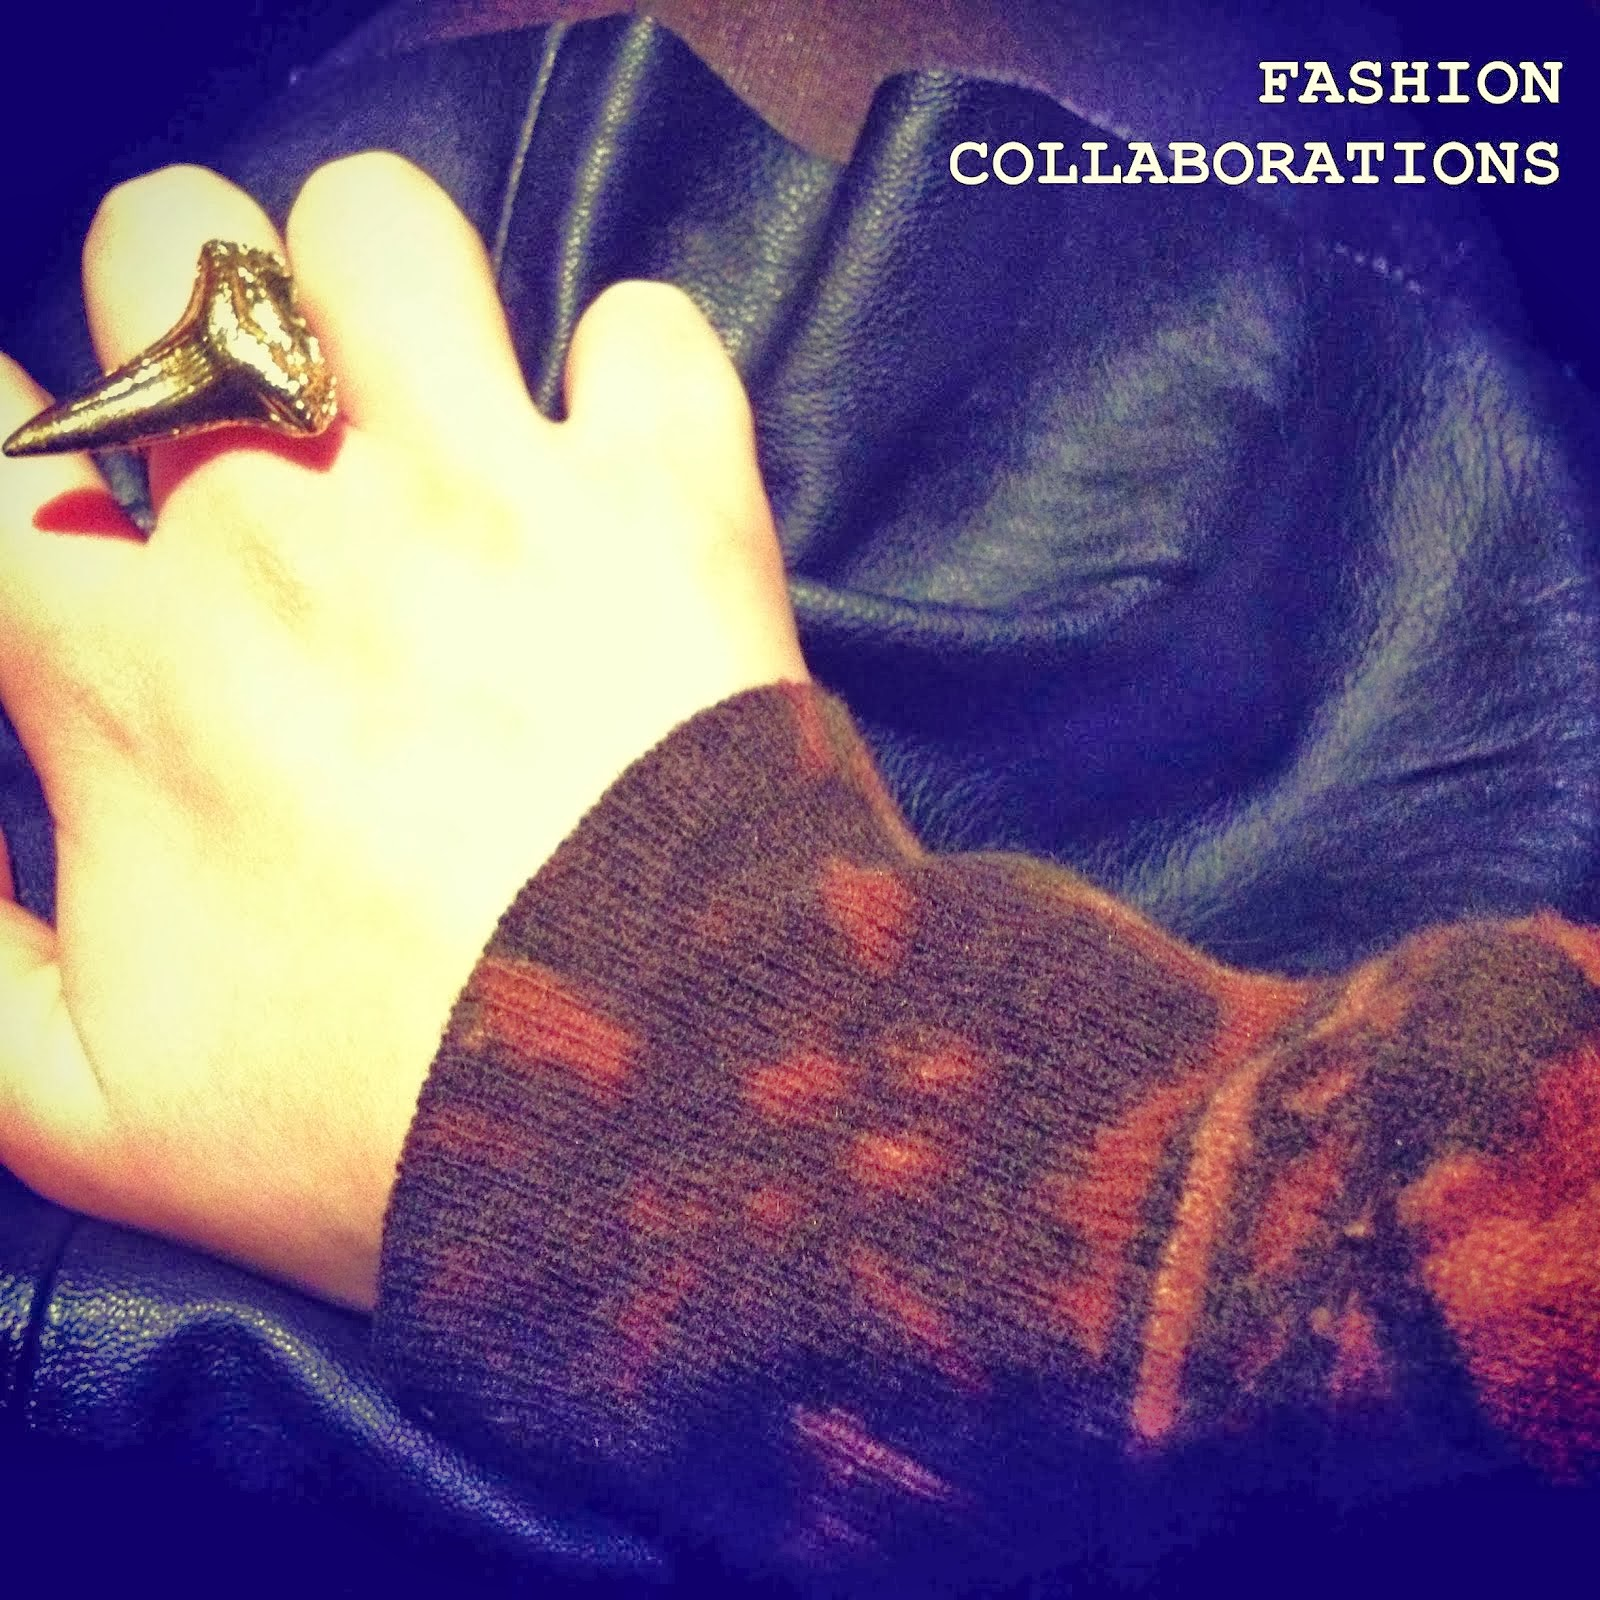 FASHION COLLABORATIONS